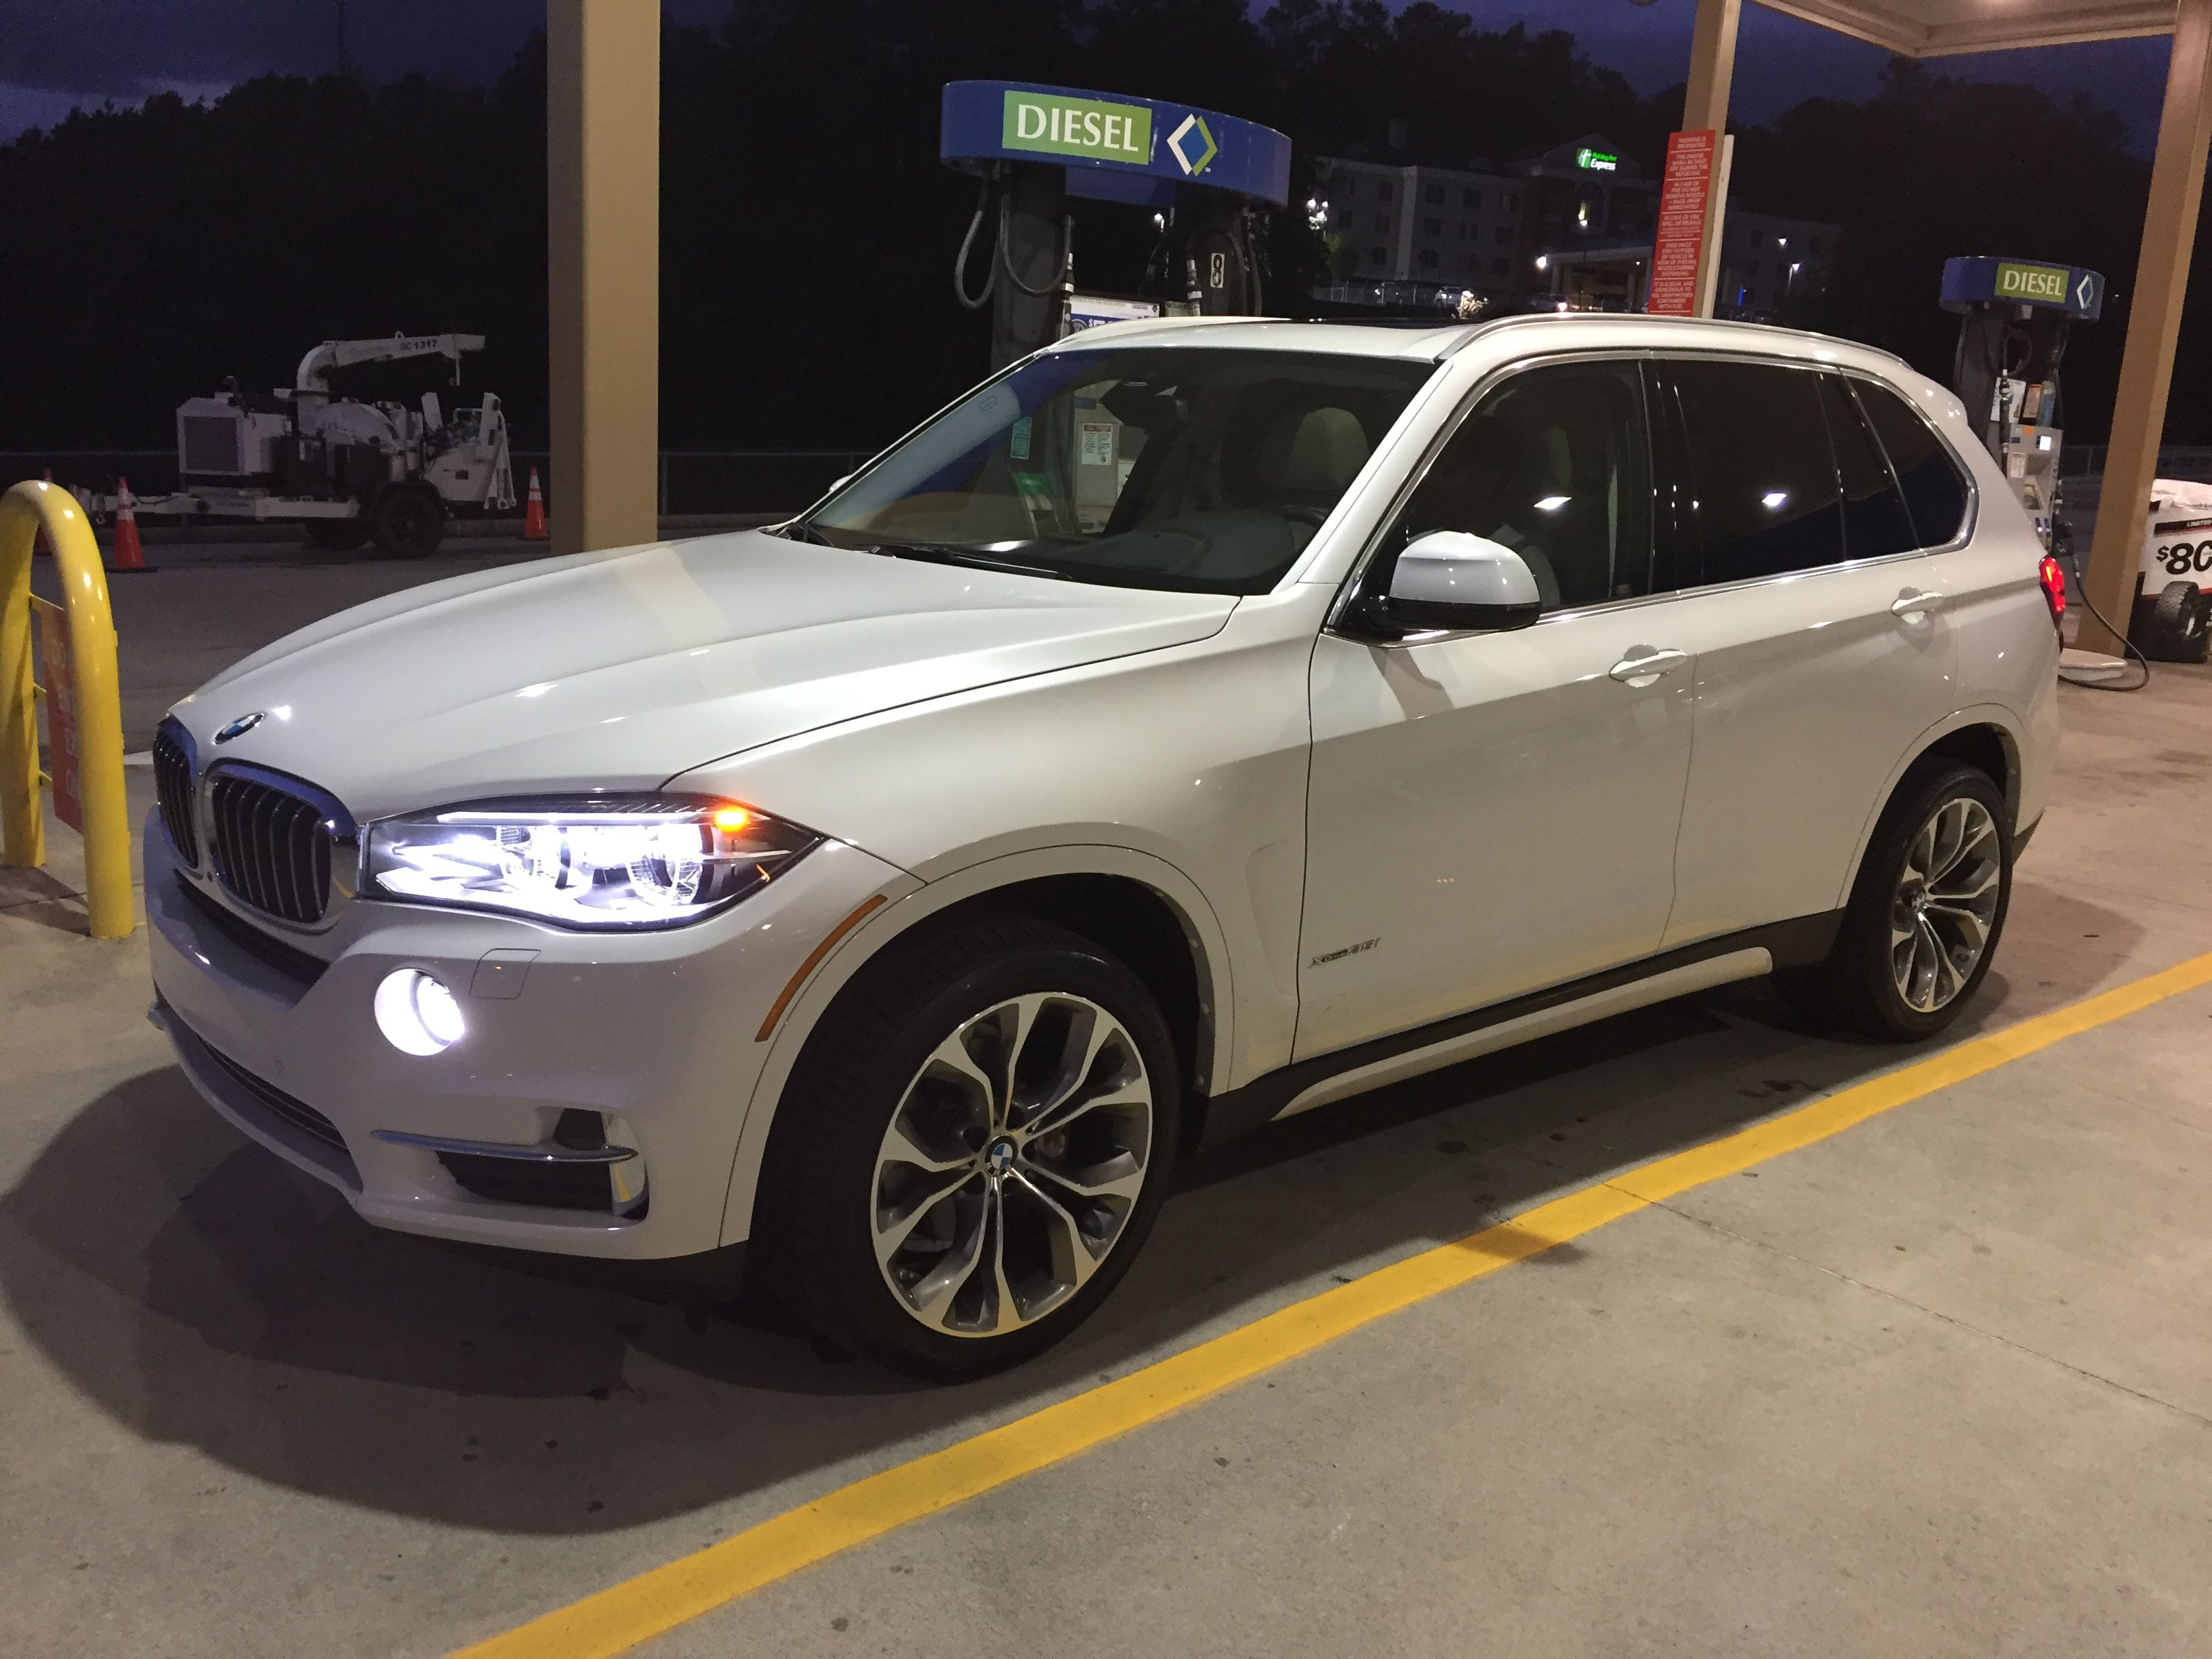 2020 Bmw X5 Review Pricing And Specs With Images Small Suv